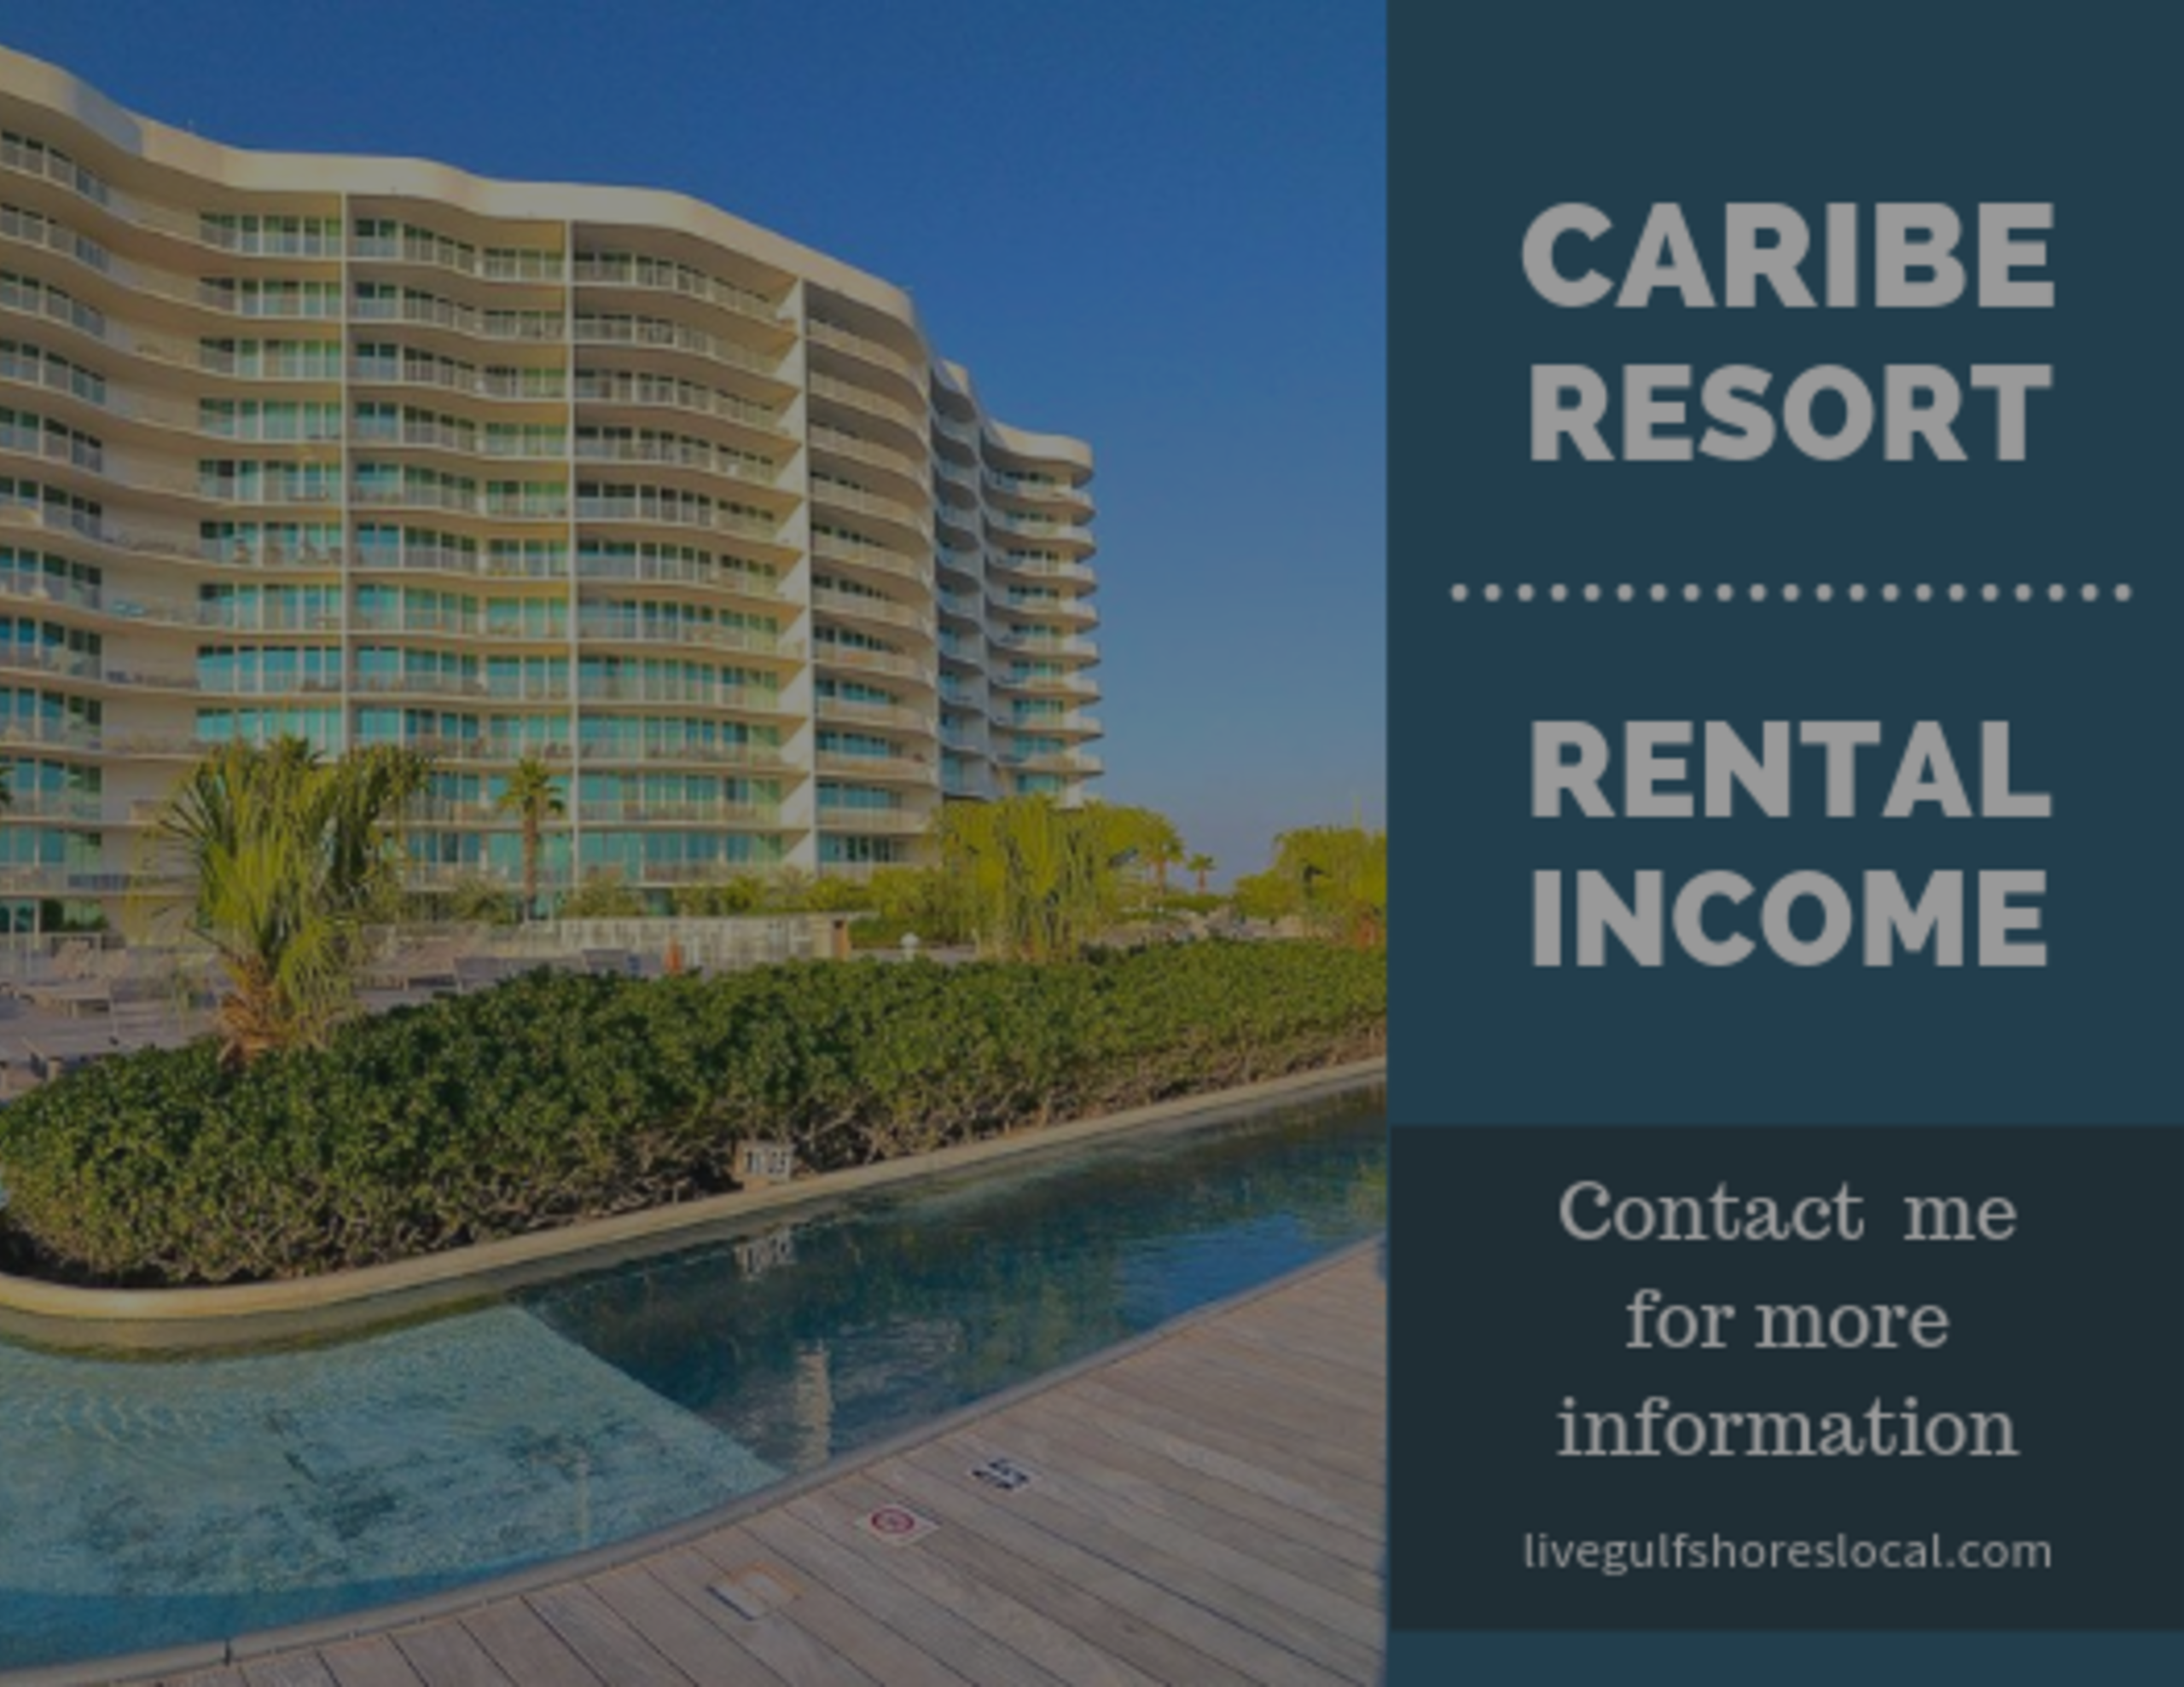 Rental Income for Caribe Resort